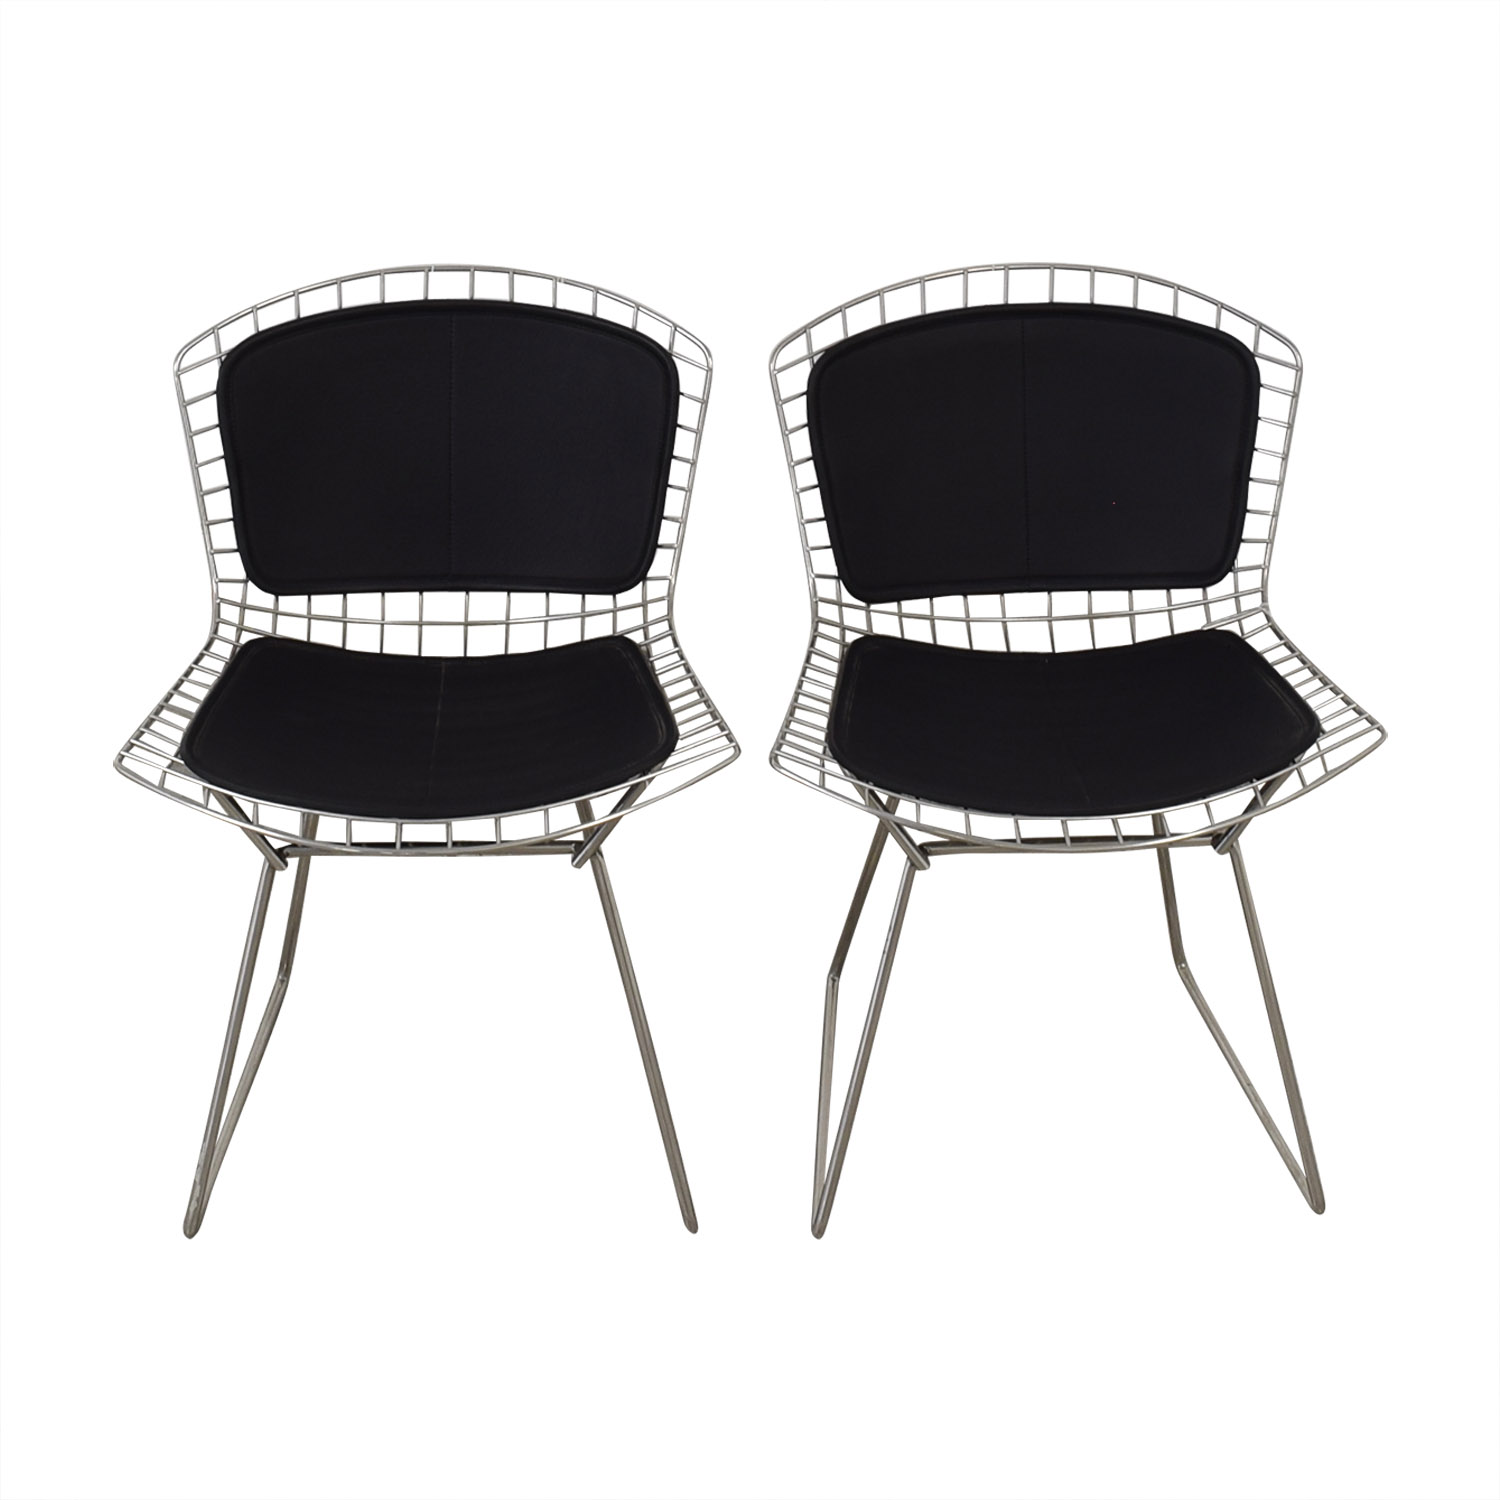 Control Brand Bertoia-Style Chairs / Chairs